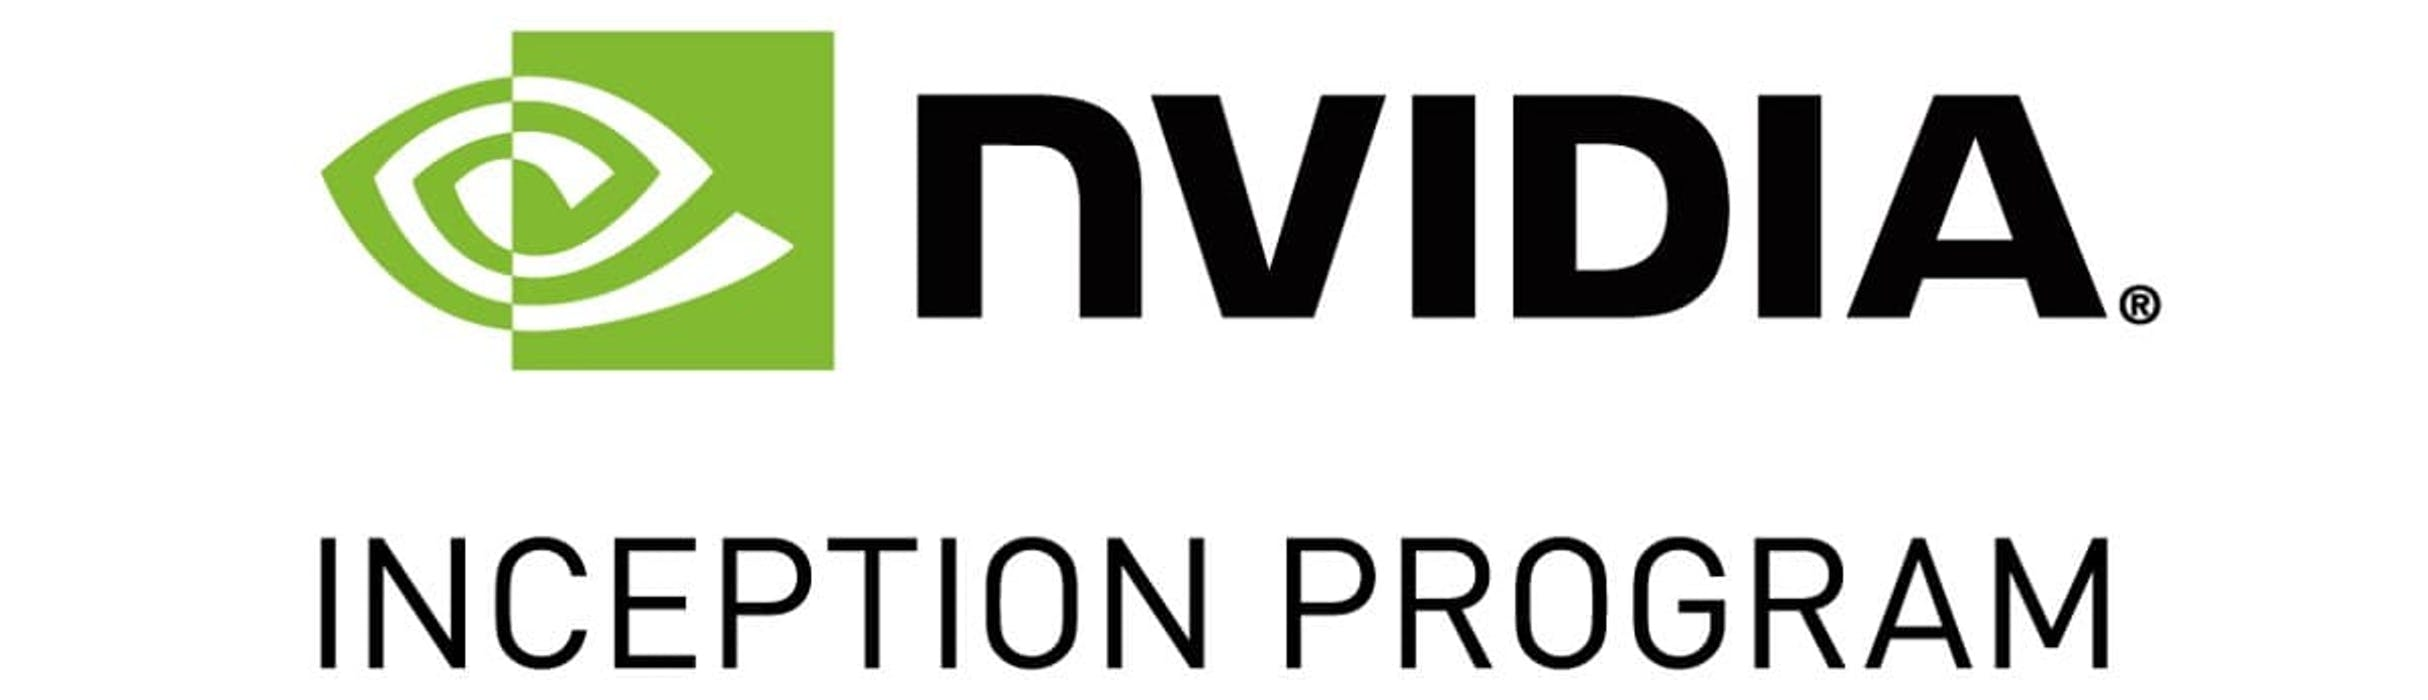 logo for NVIDIA Inception program